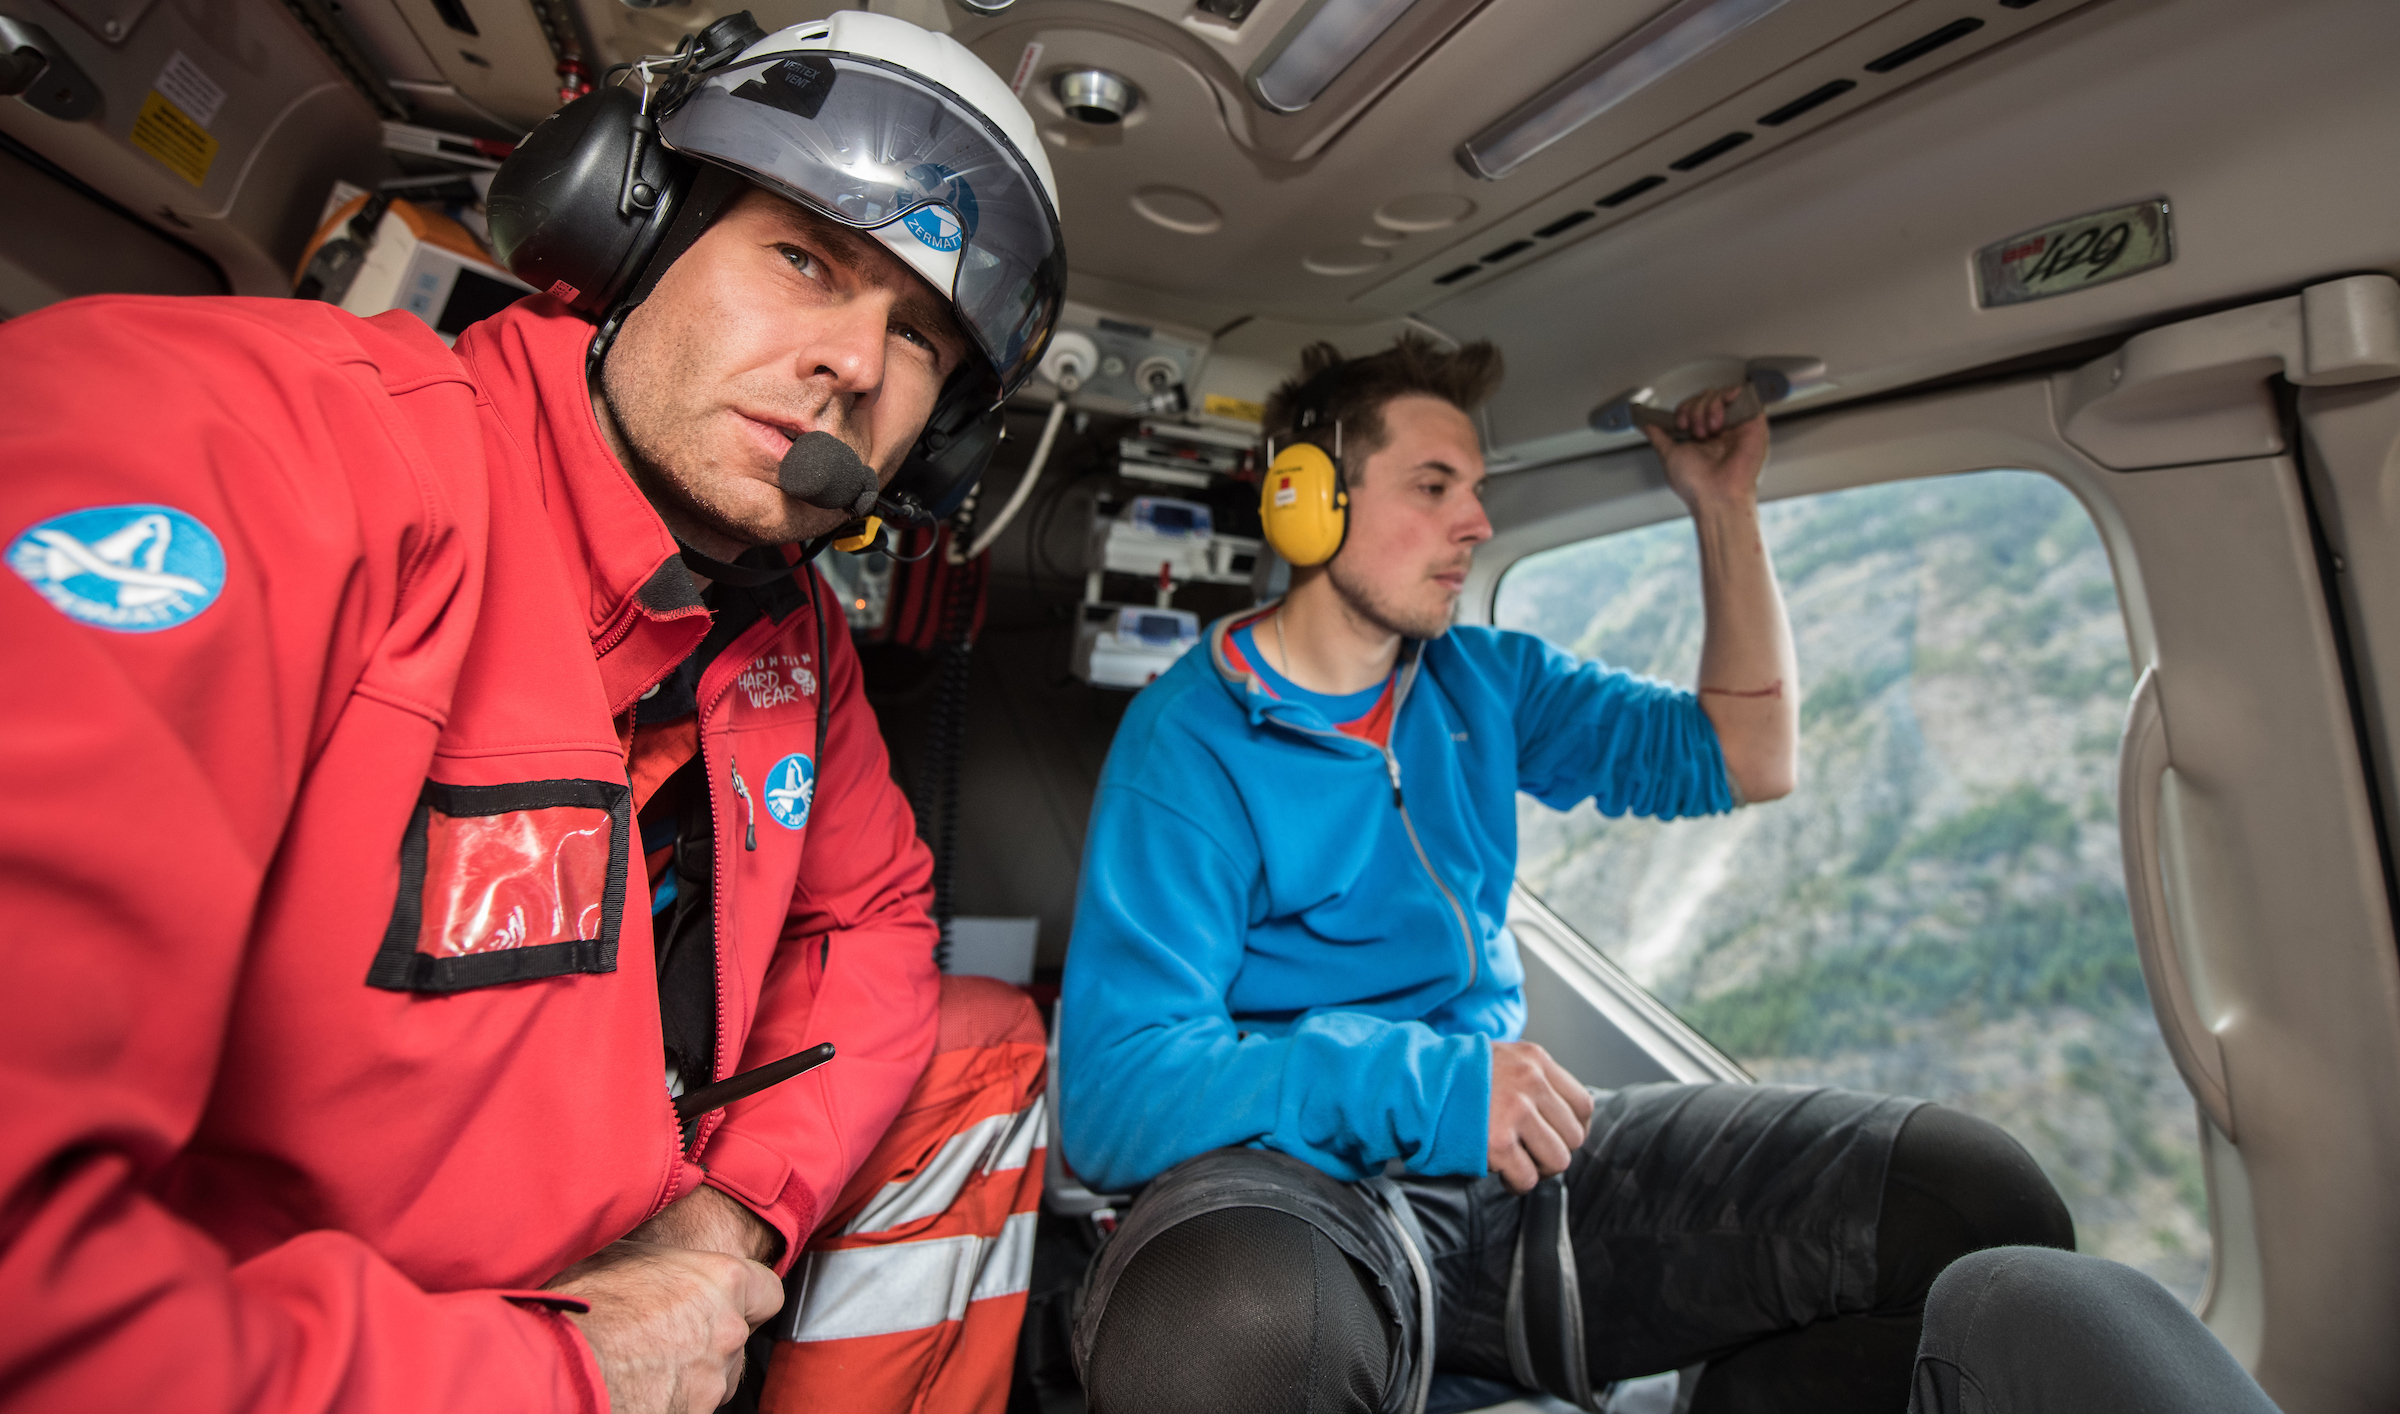 Air Zermatt - I first got to know the Air Zermatt members when I served as ICE-SAR's deligate at IKAR. So when they welcomed me for a ride-along to photograph them at work I knew I was in for a treat.